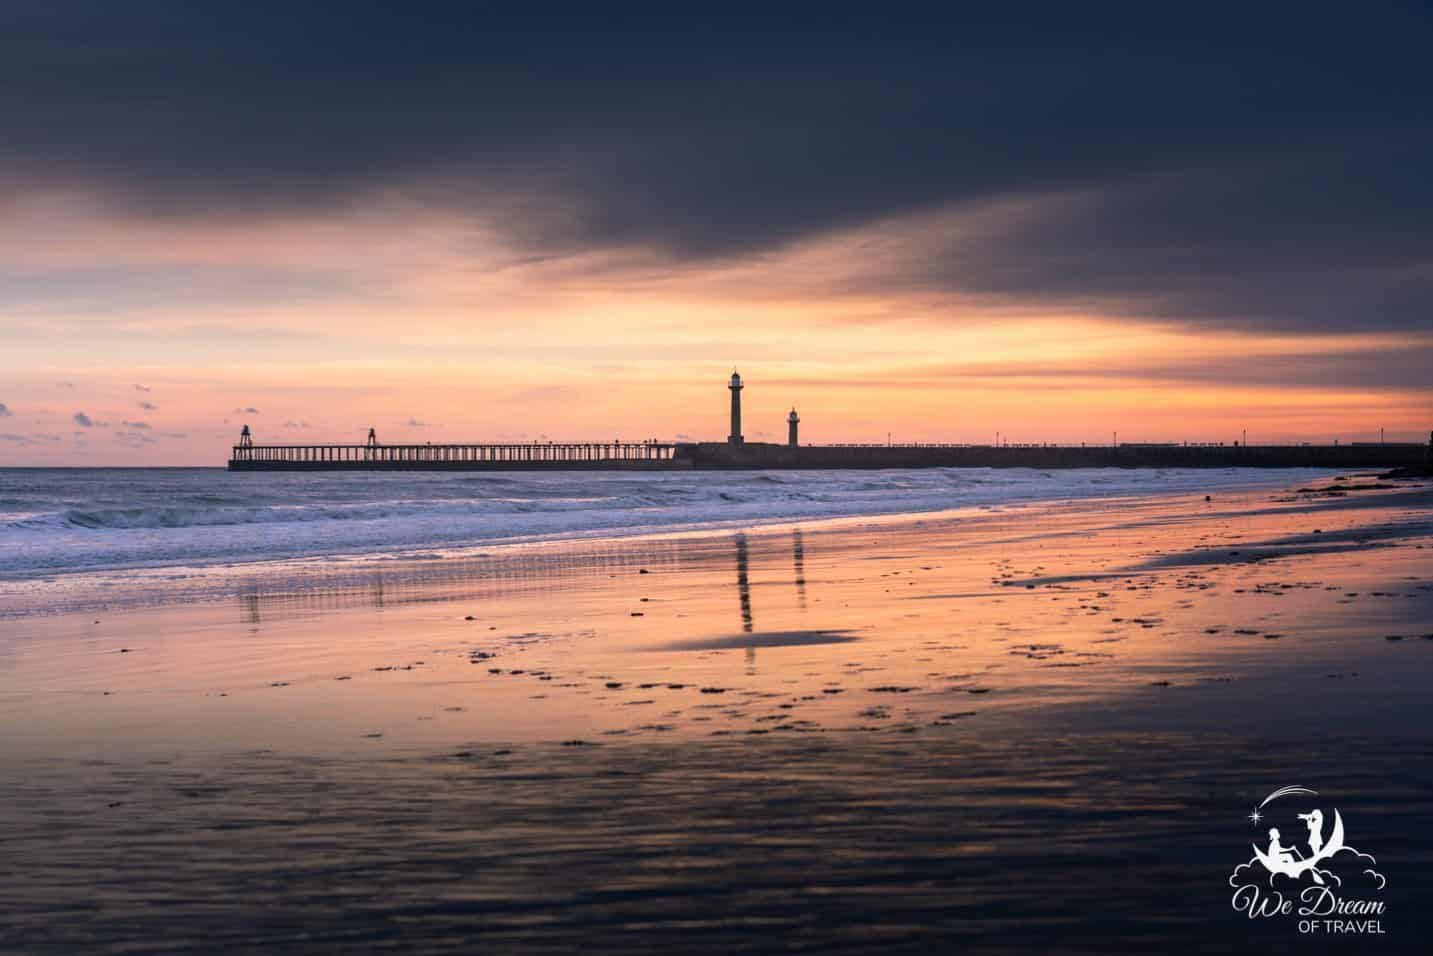 A vibrant sunrise at Whitby Beach looking back towards the piers.